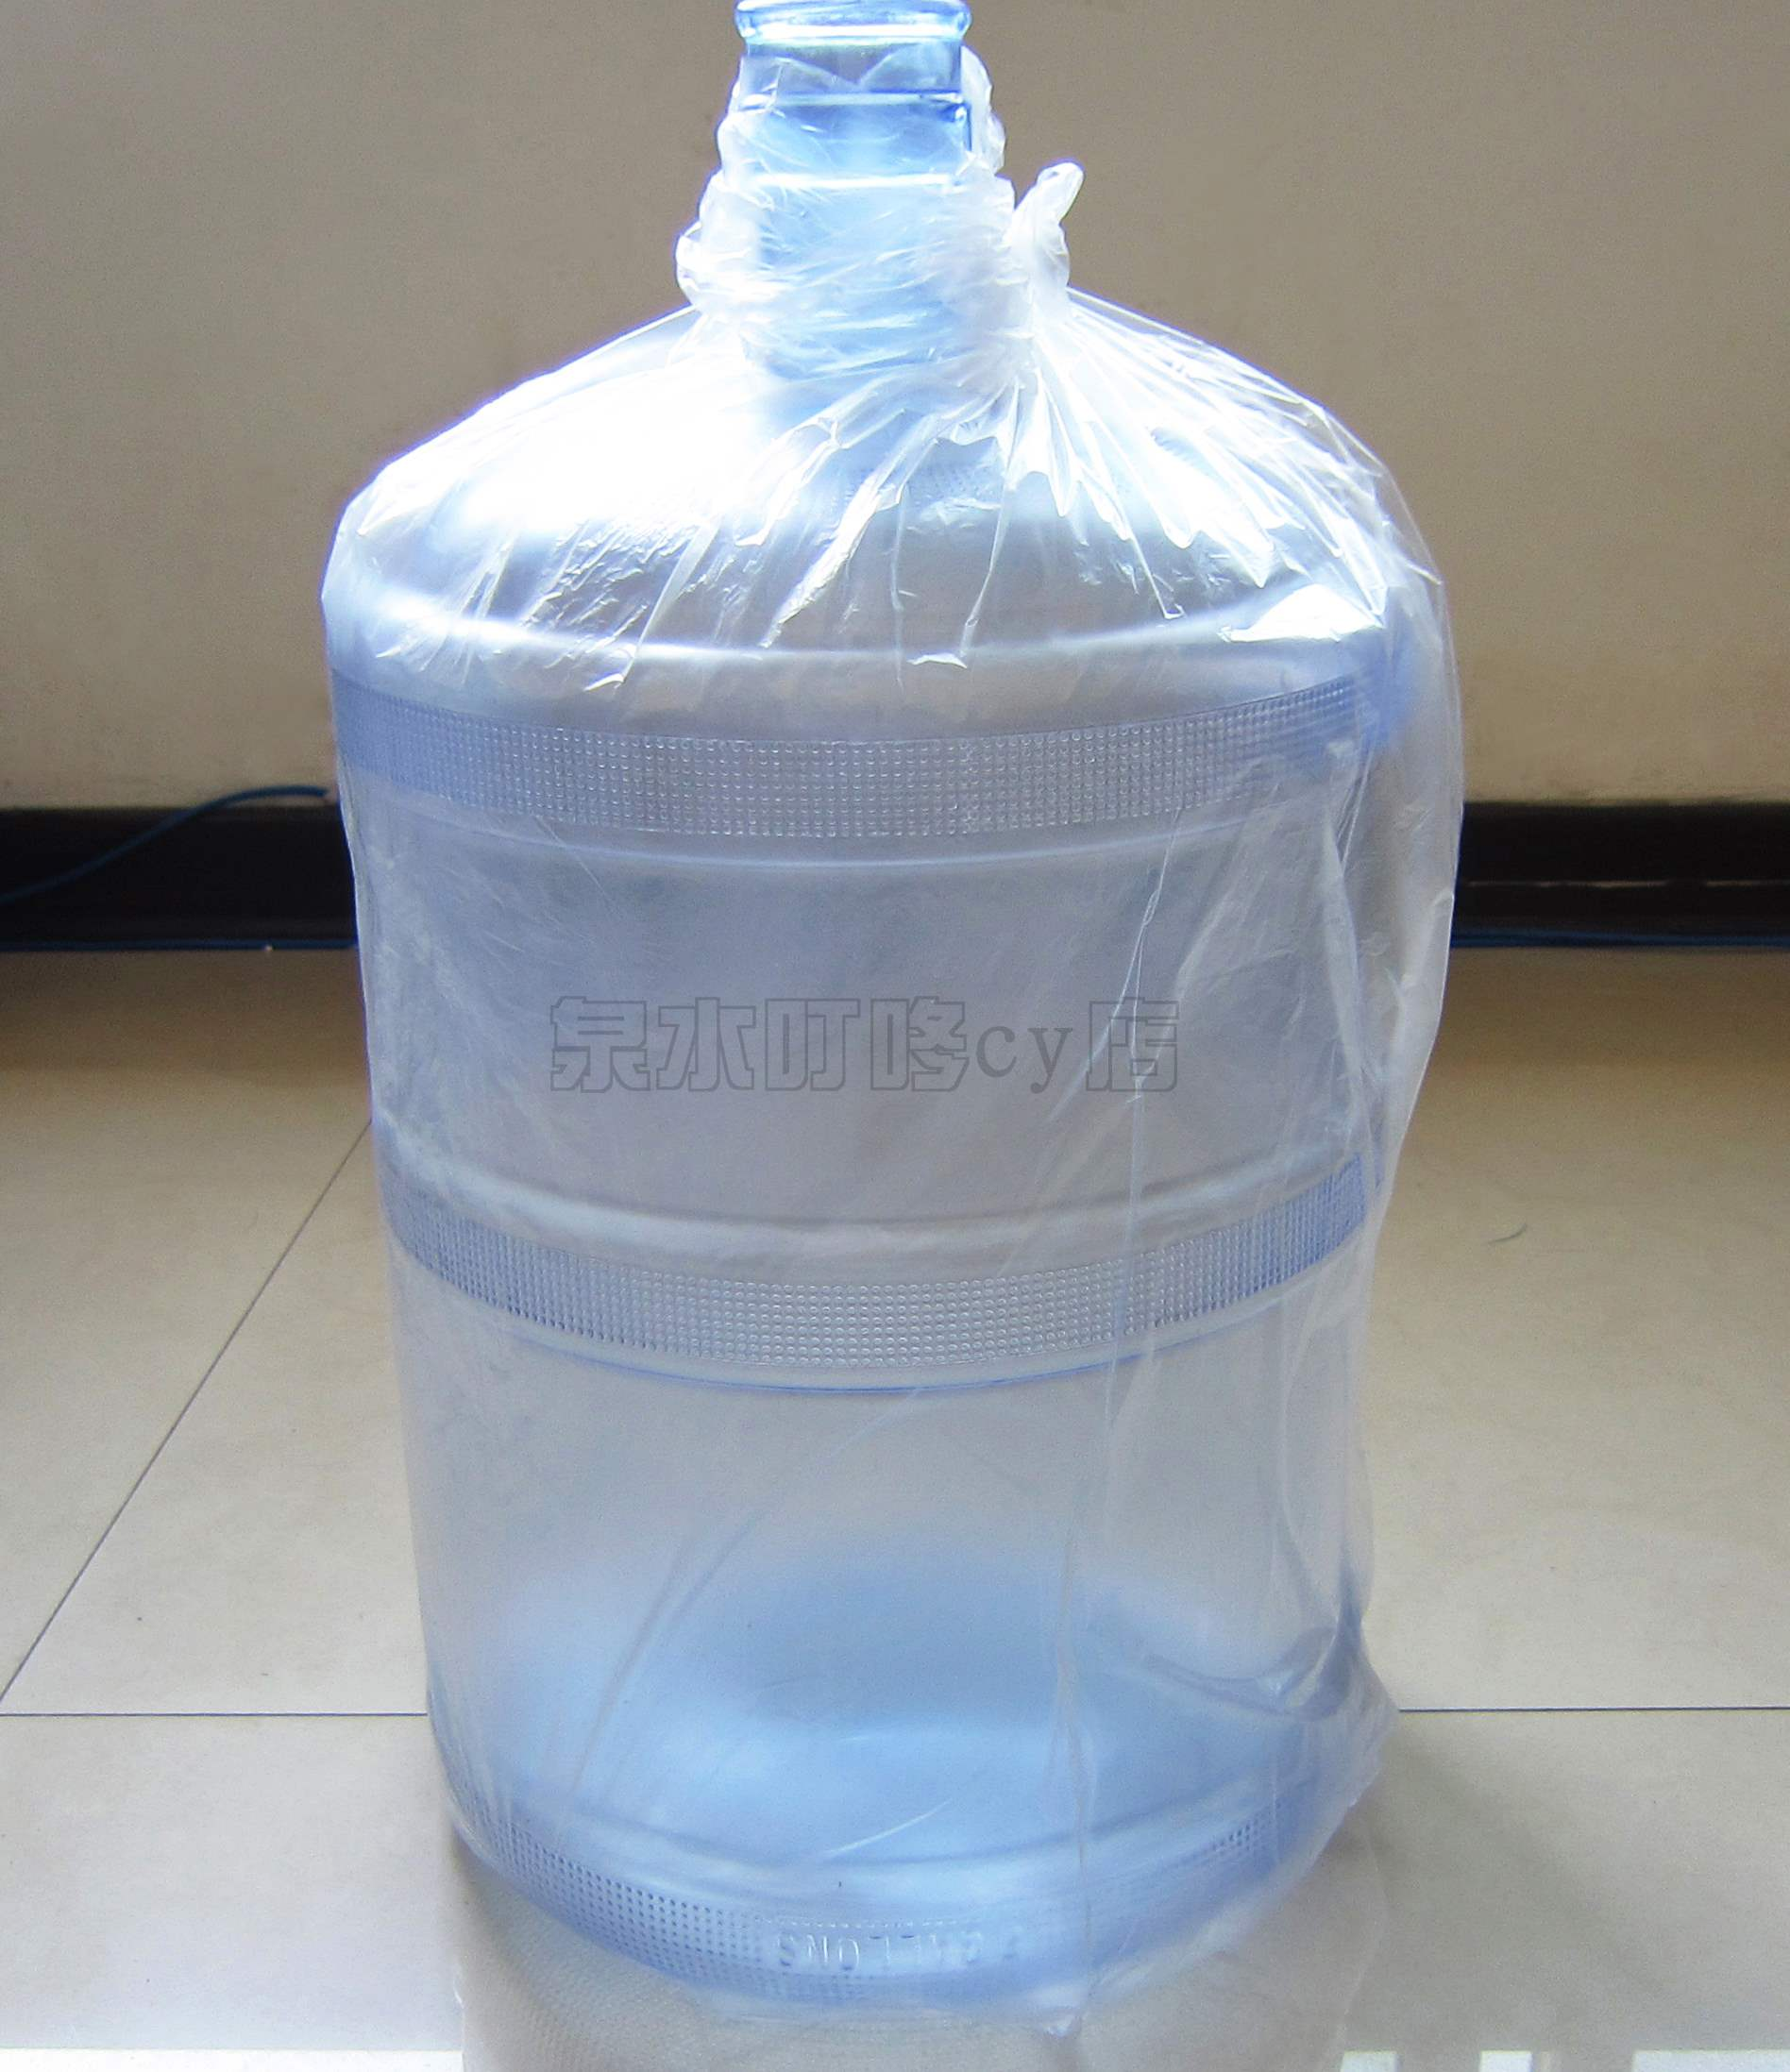 Pure water barrel outer packing bag film barrel water barrel packing bag dust-proof bag mineral water barrel plastic bag packing film